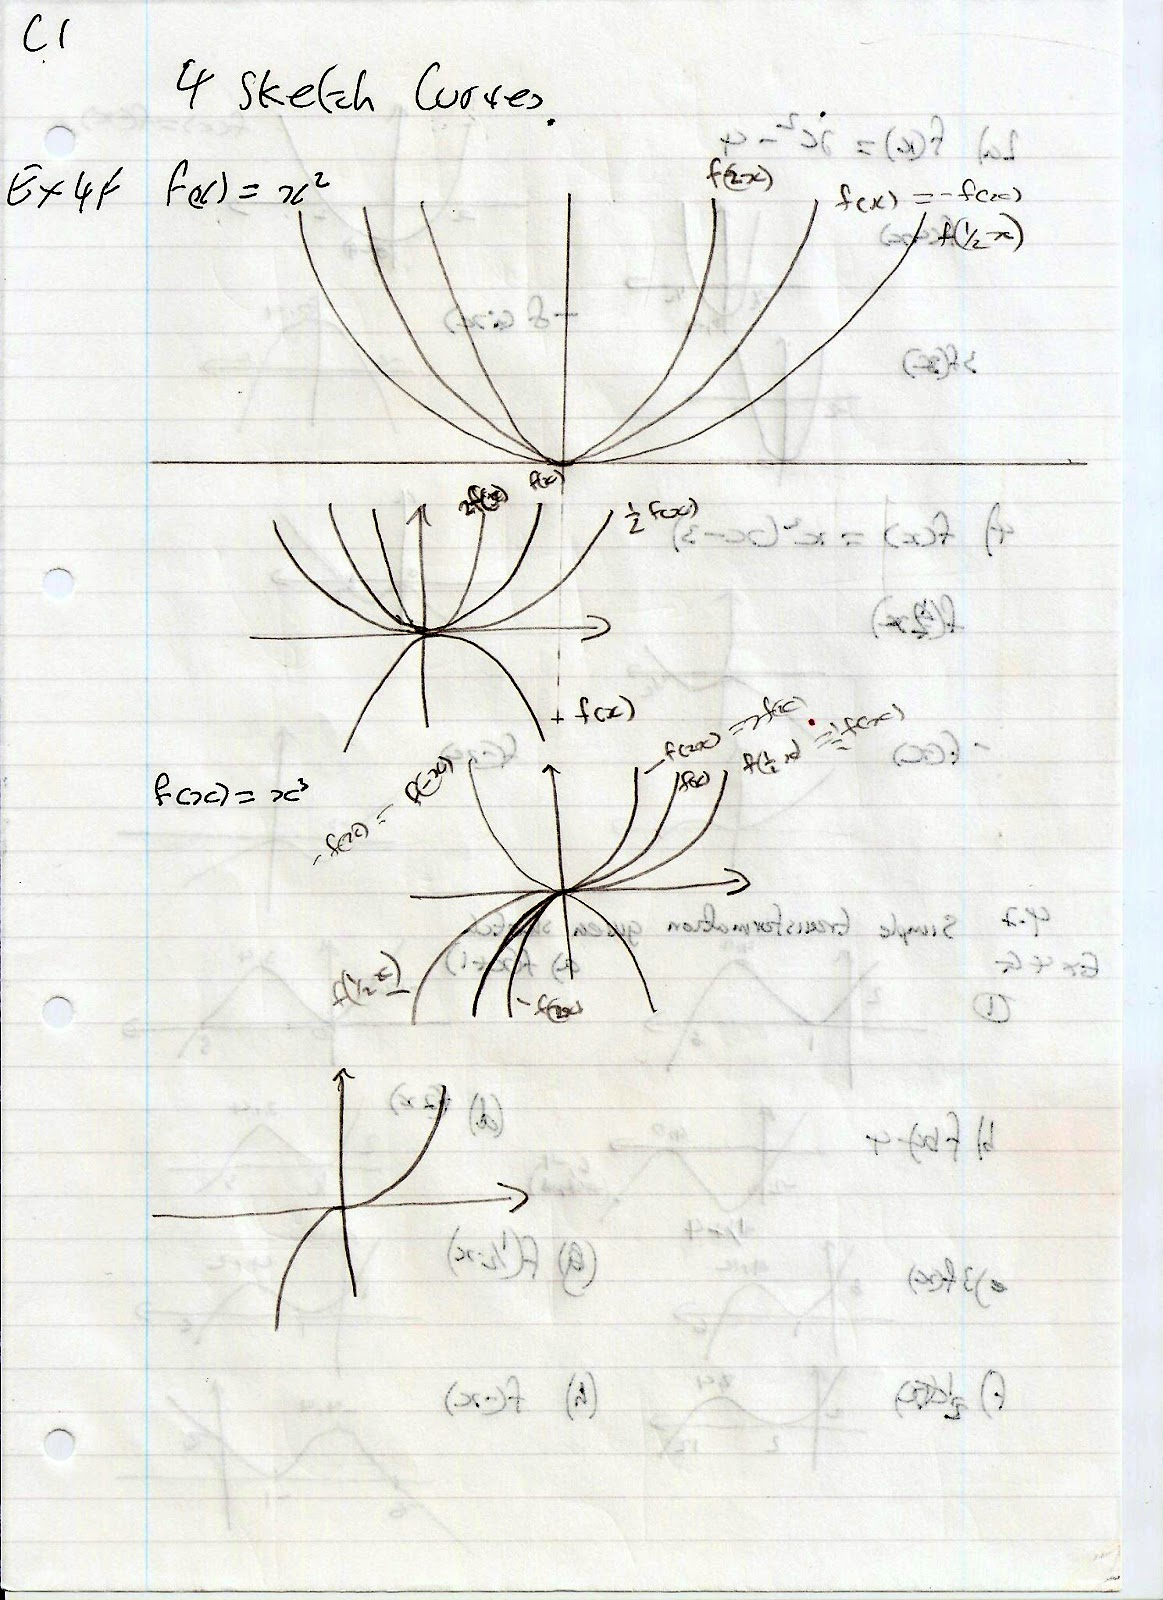 A Level Maths Notes: EDEXCEL C1 4. Sketching Curves